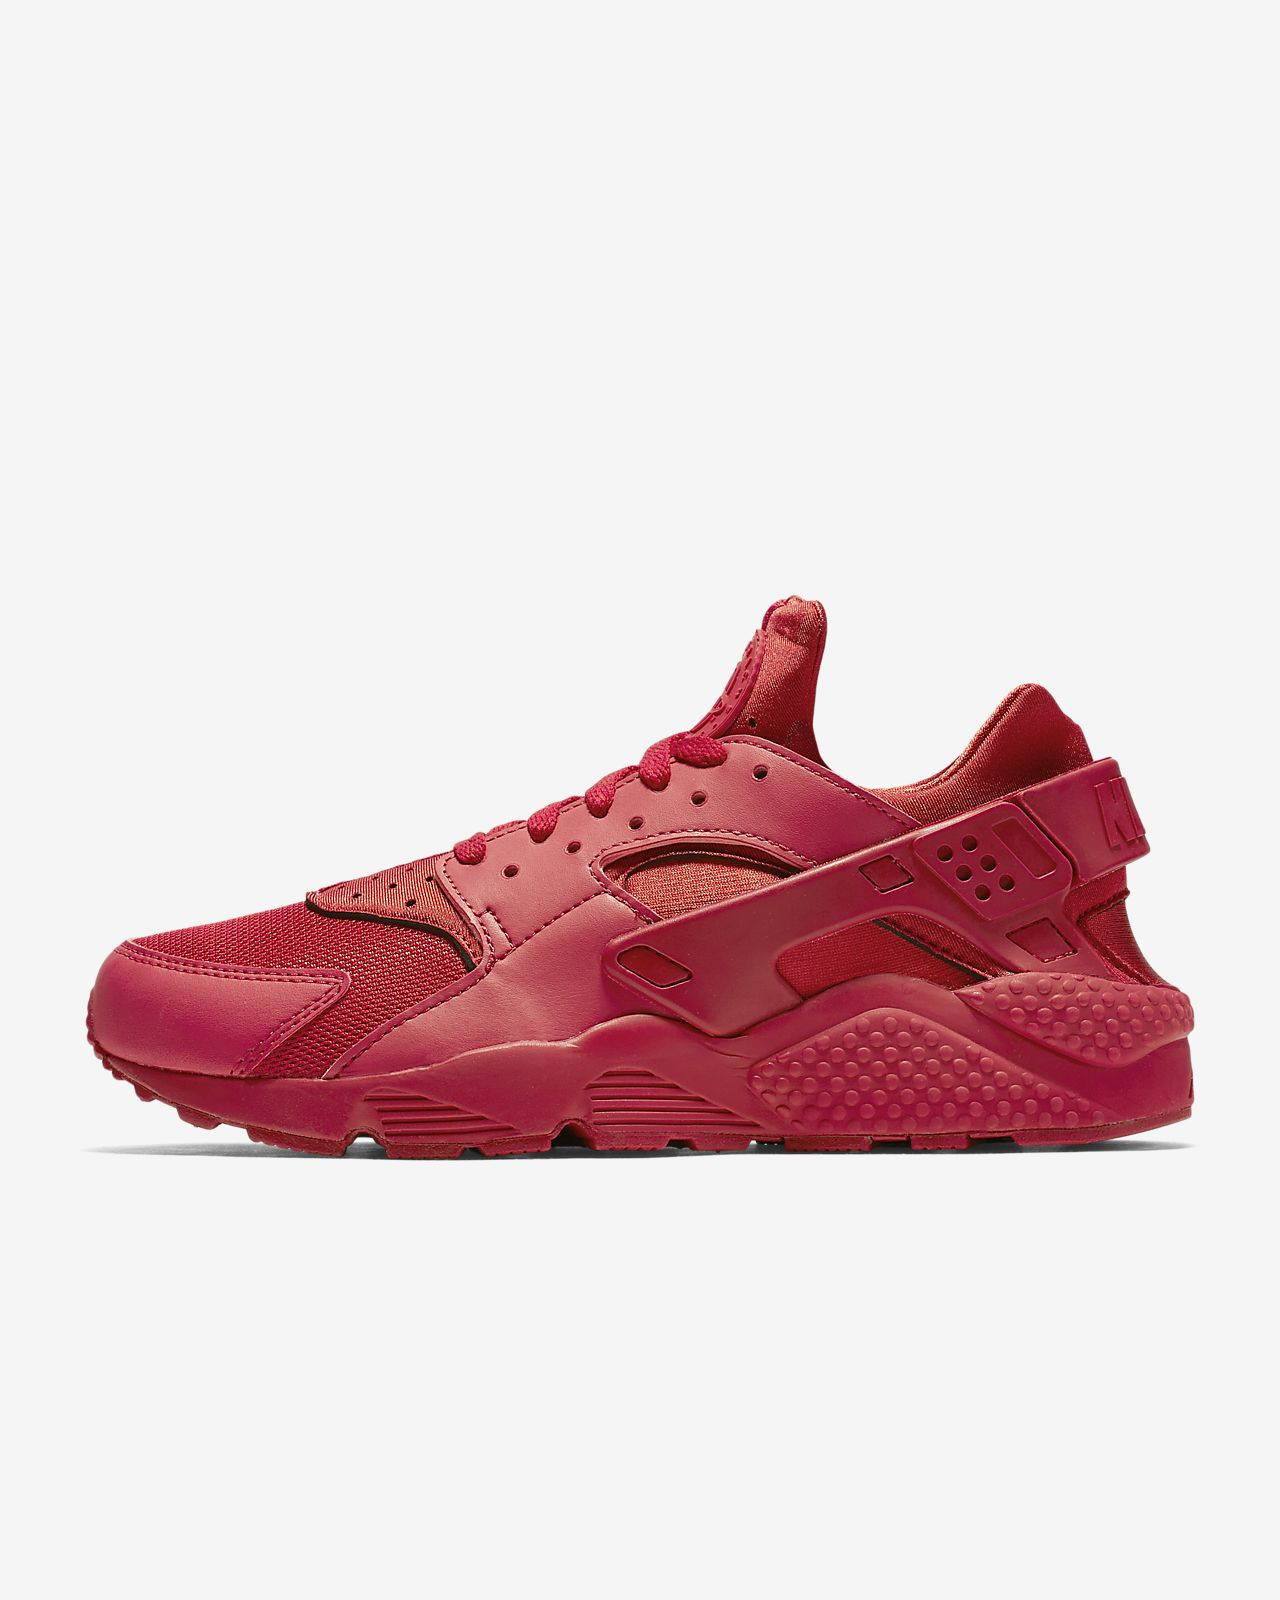 3d6cdf52c5 Nike Air Huarache Men's Shoe. Nike.com